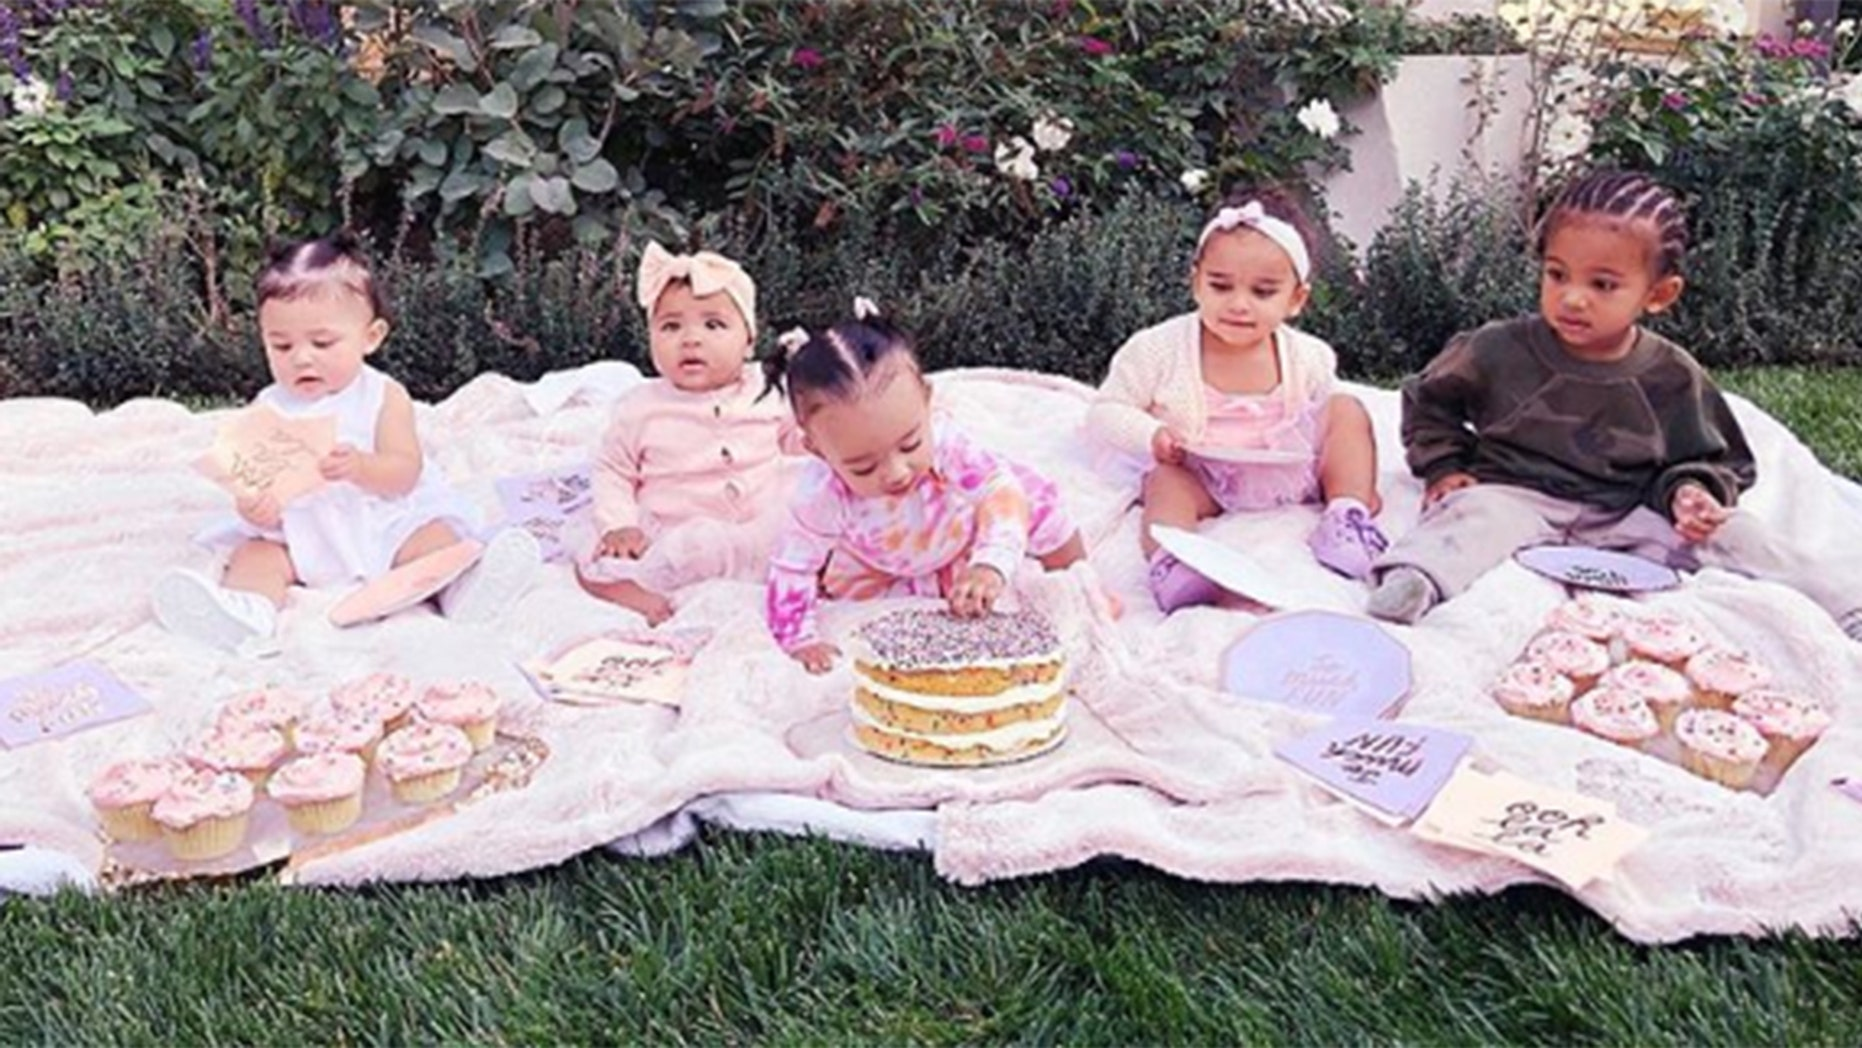 Khloe Kardashian Hosts Cousin Cupcake Party With Sisters Kids For